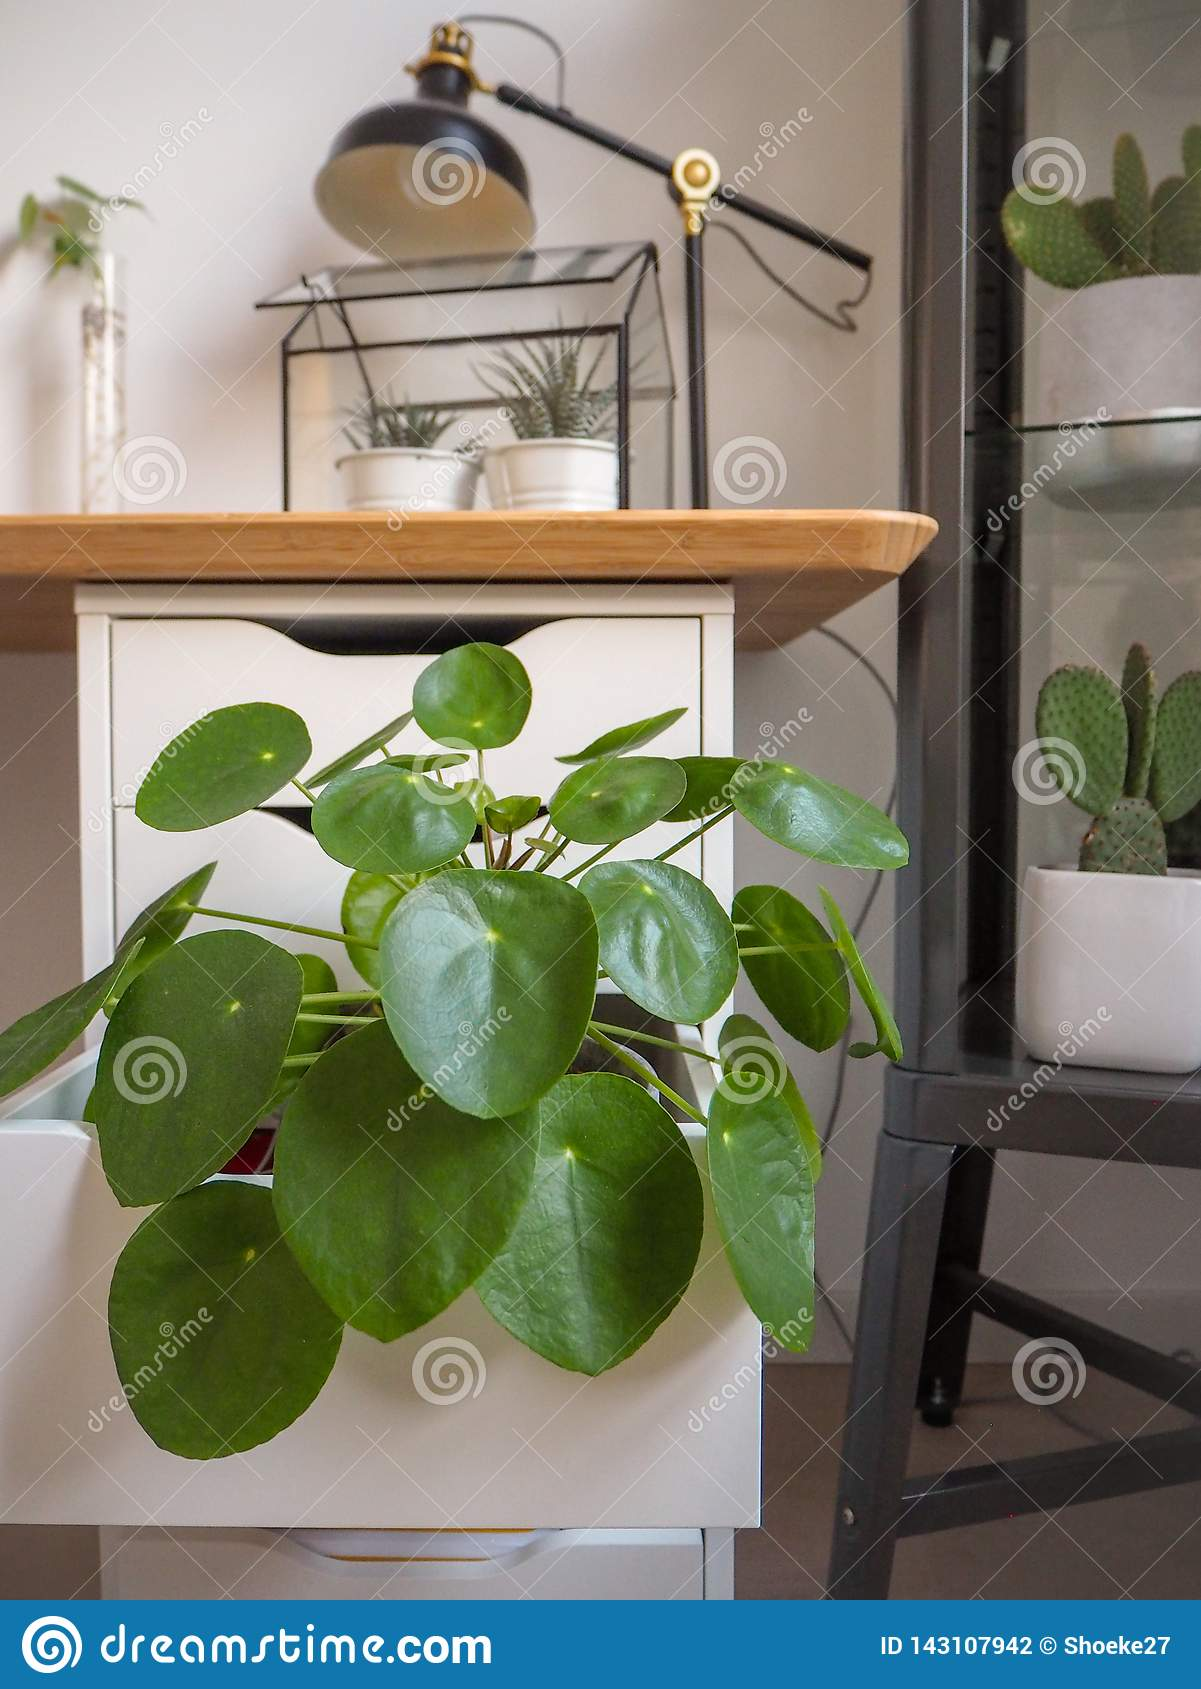 Industrial Study Room: Large Pancake Plant In An Industrial Black And White Study